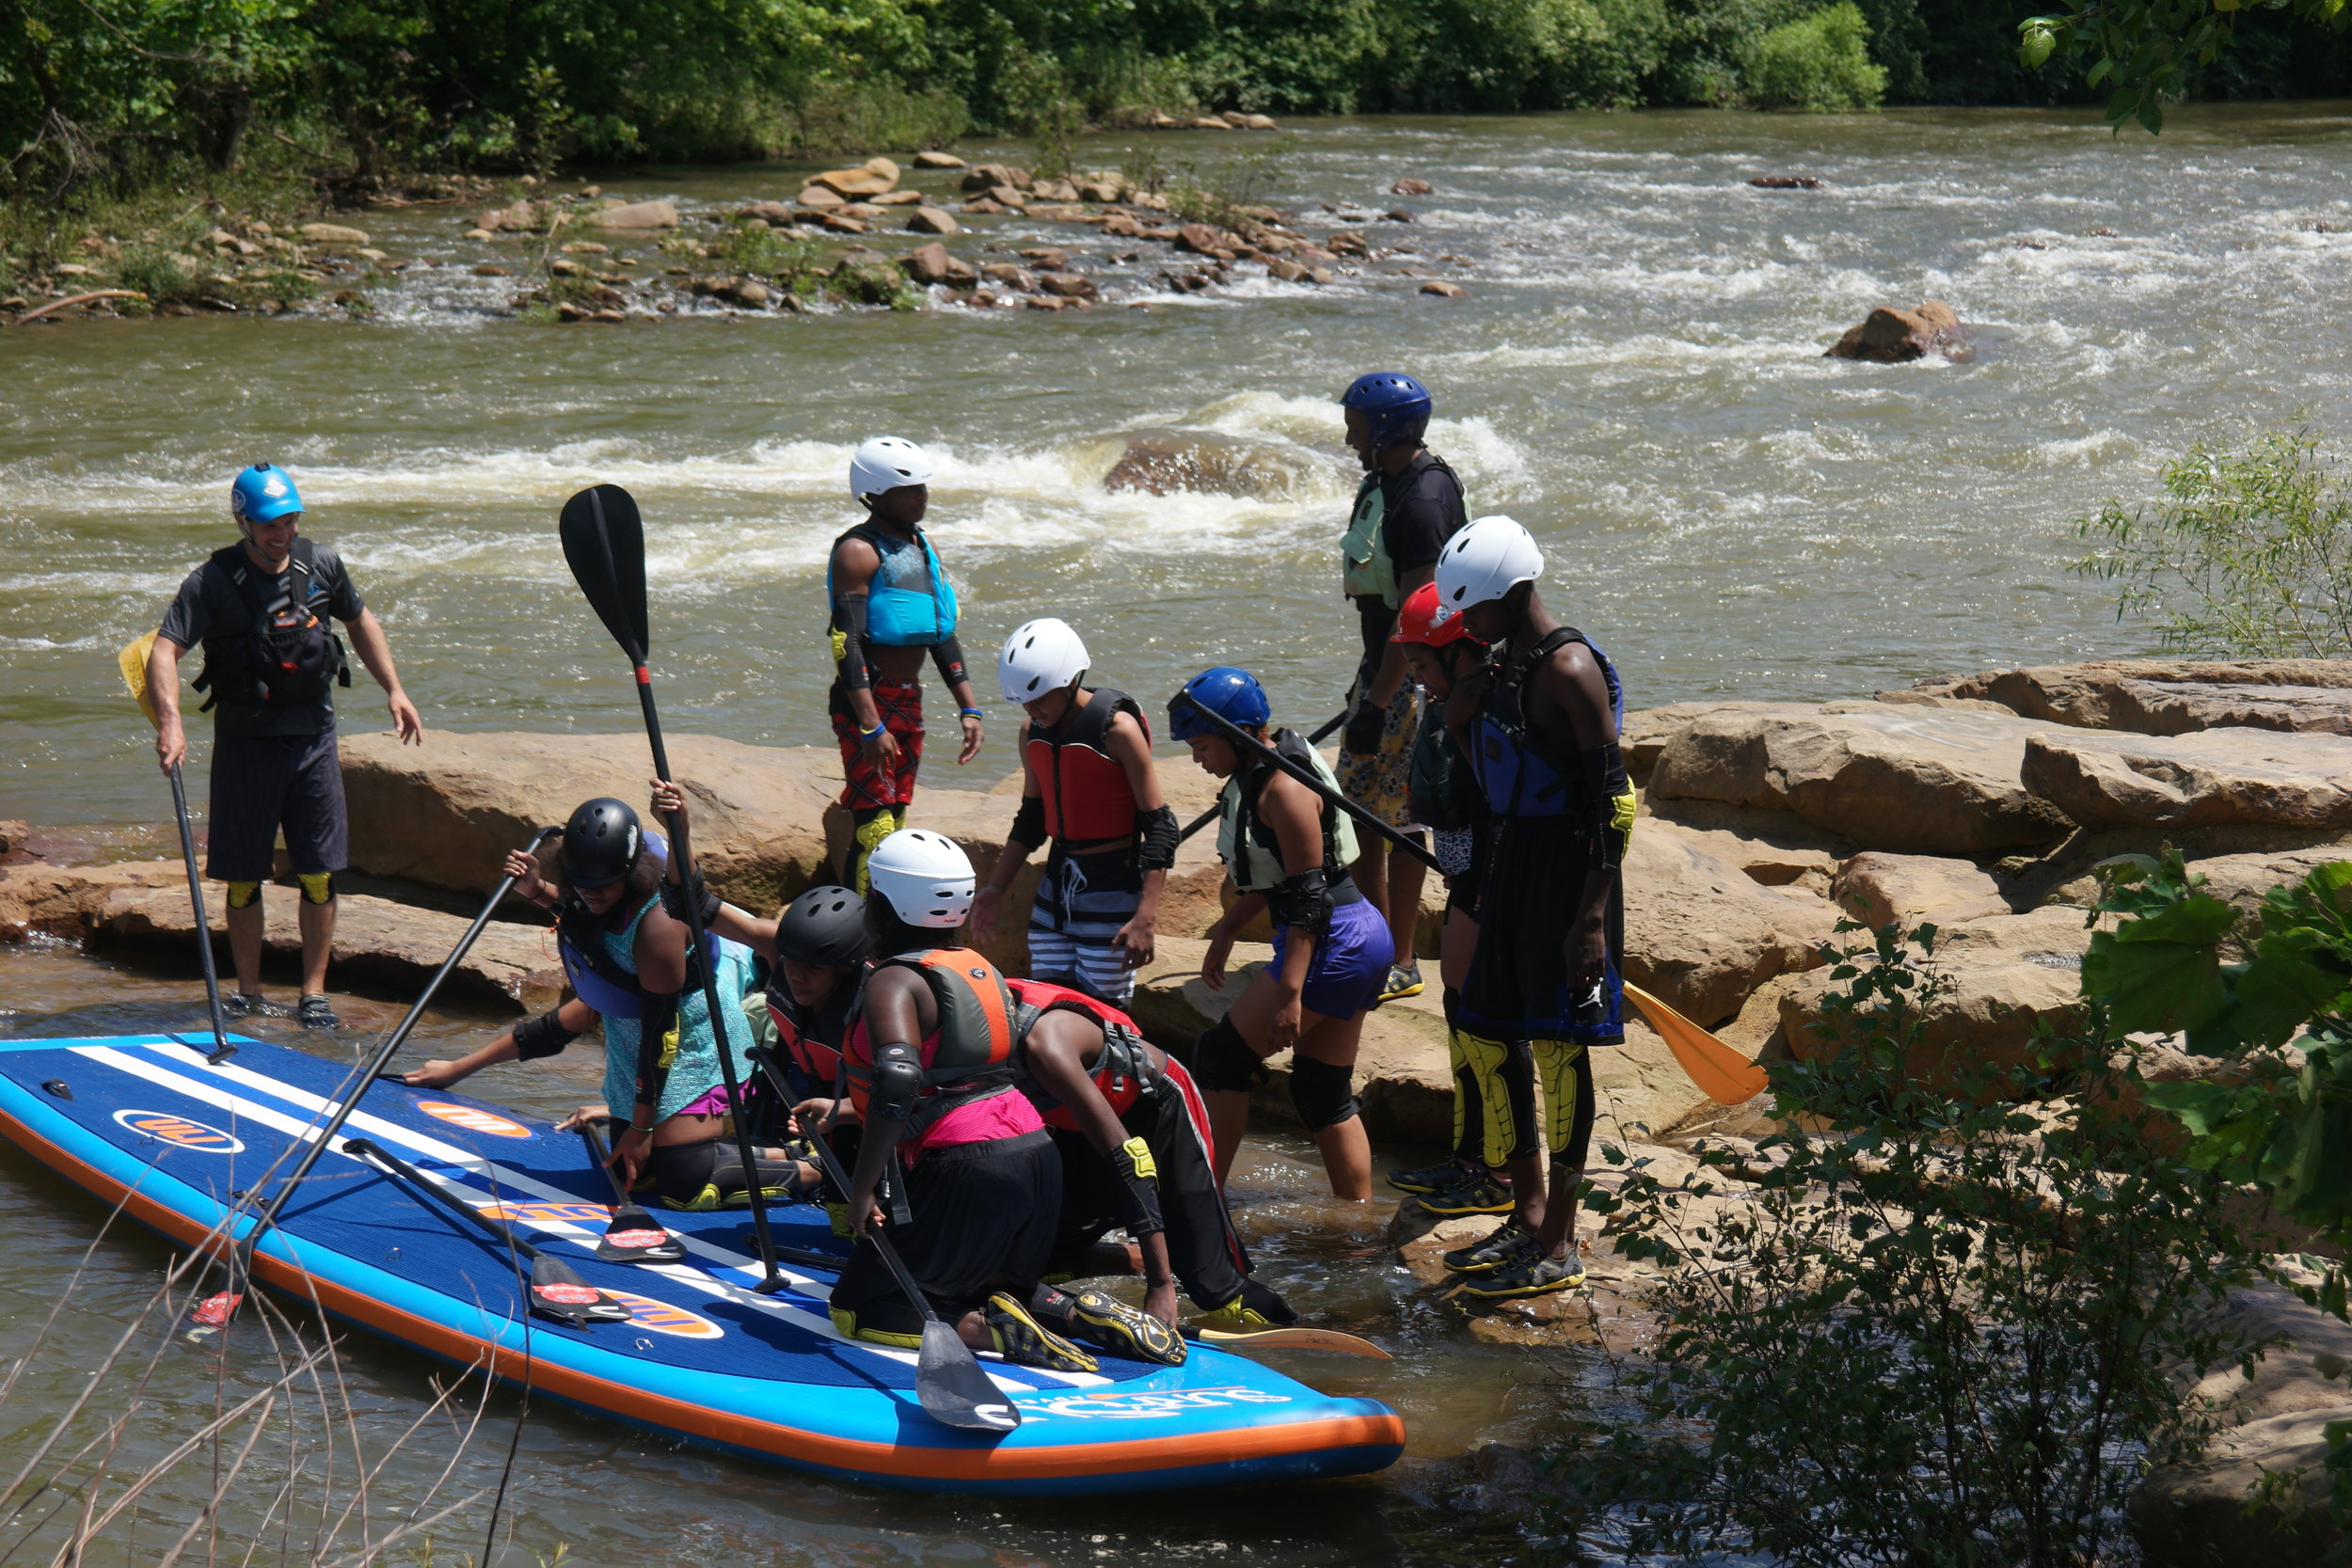 The team prepares to board the SSS SUPSQUATCH, an 18 - foot team paddleboard that they would paddle through the rapids of the Stonycreek River!